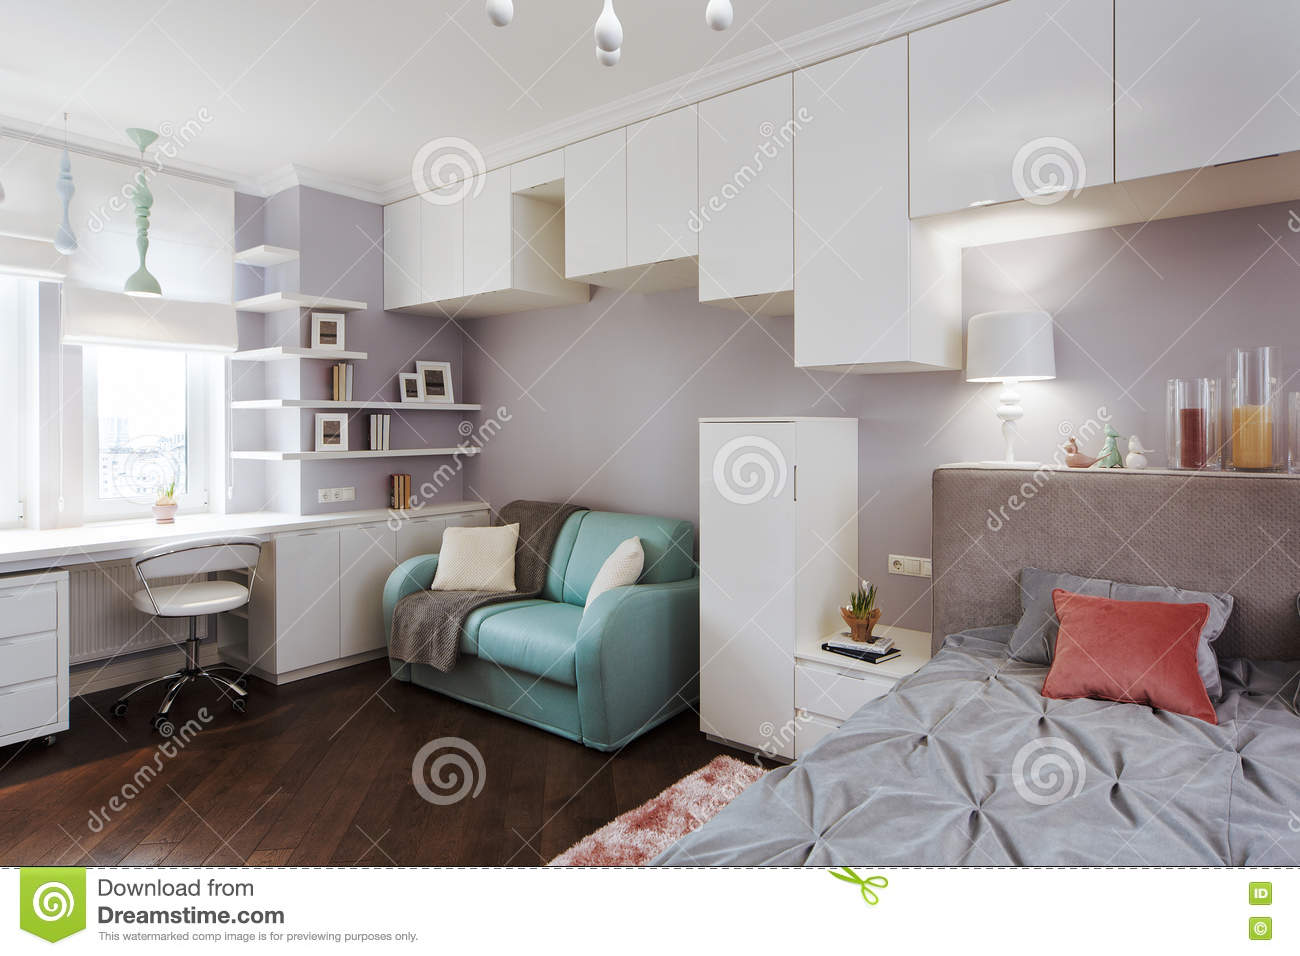 Outstanding Interior Light Childrens Bedroom With A Large Bed And A Andrewgaddart Wooden Chair Designs For Living Room Andrewgaddartcom